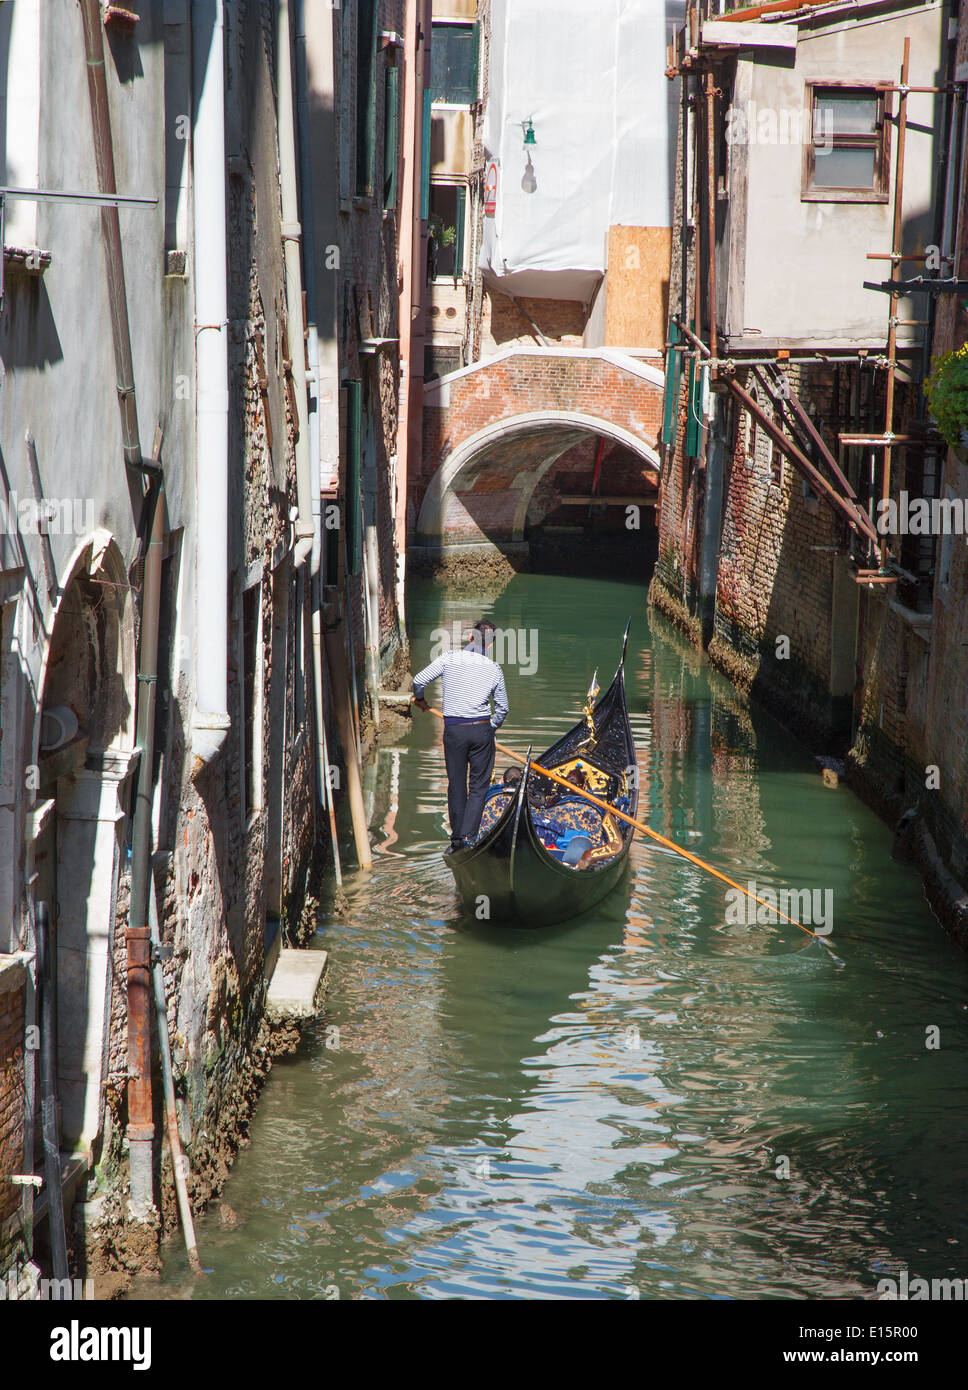 VENICE, ITALY - MARCH 12, 2014: Gondolier on the little canal in center of the town. - Stock Image